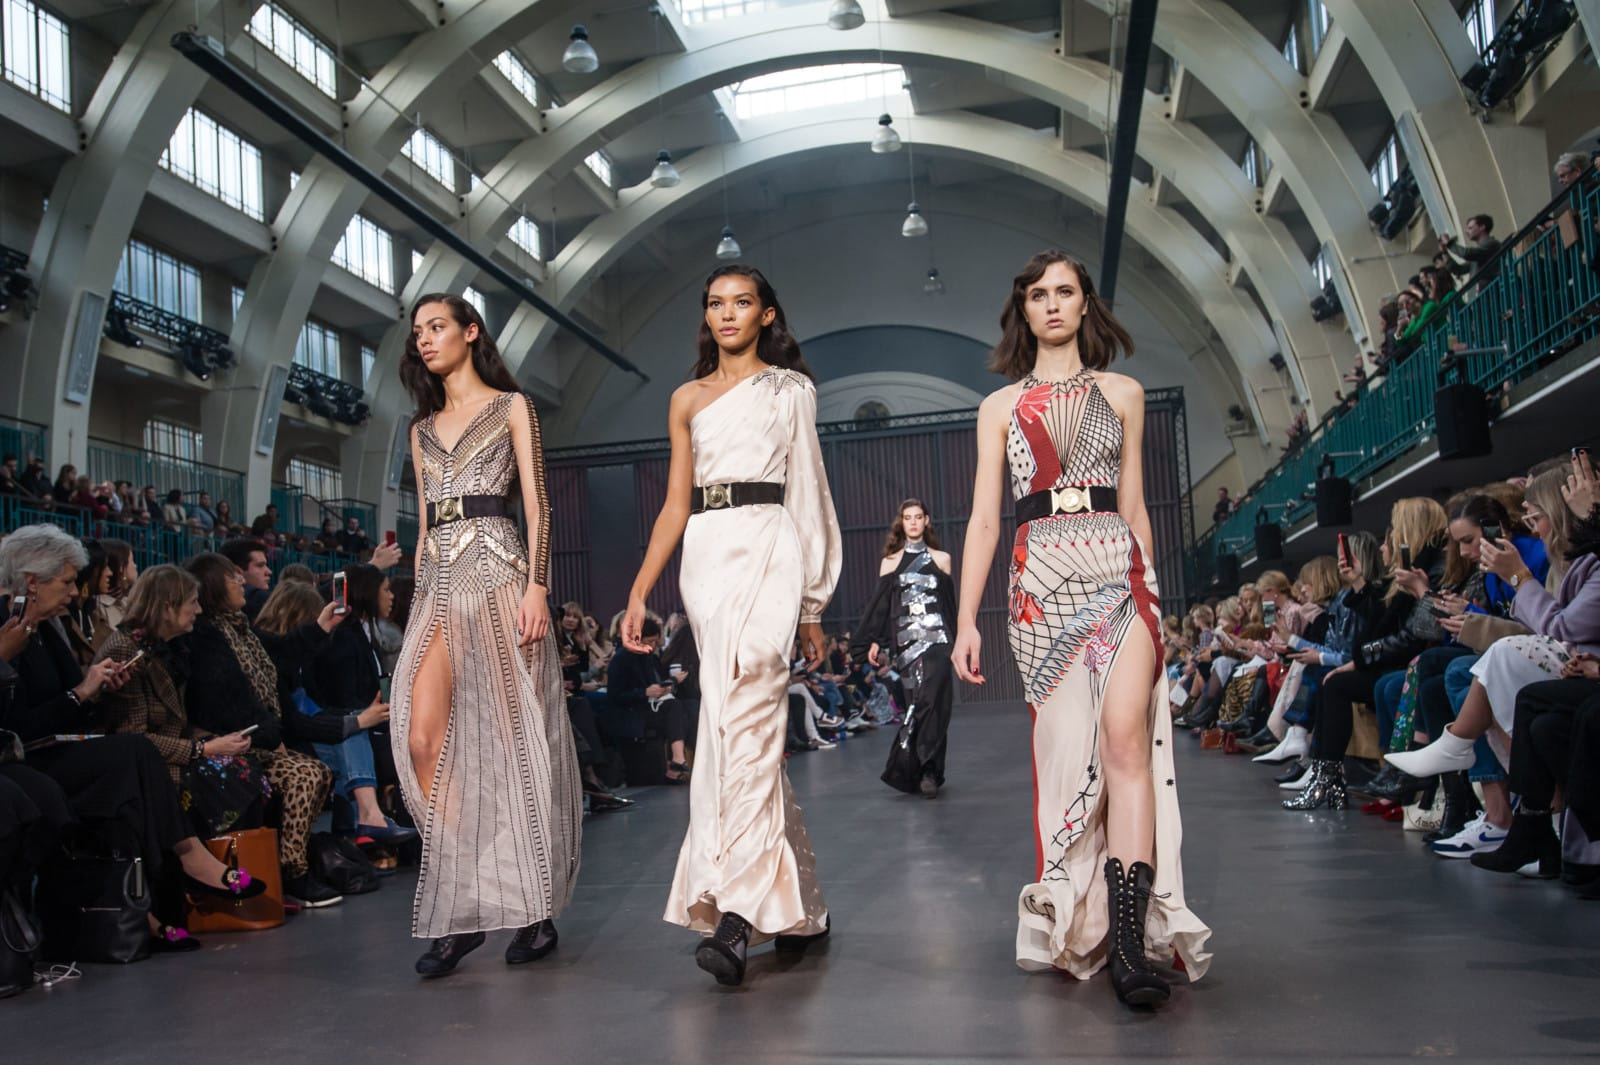 temperley-3-london-fashion-week-freelance-photographer-richard-isaac-3200